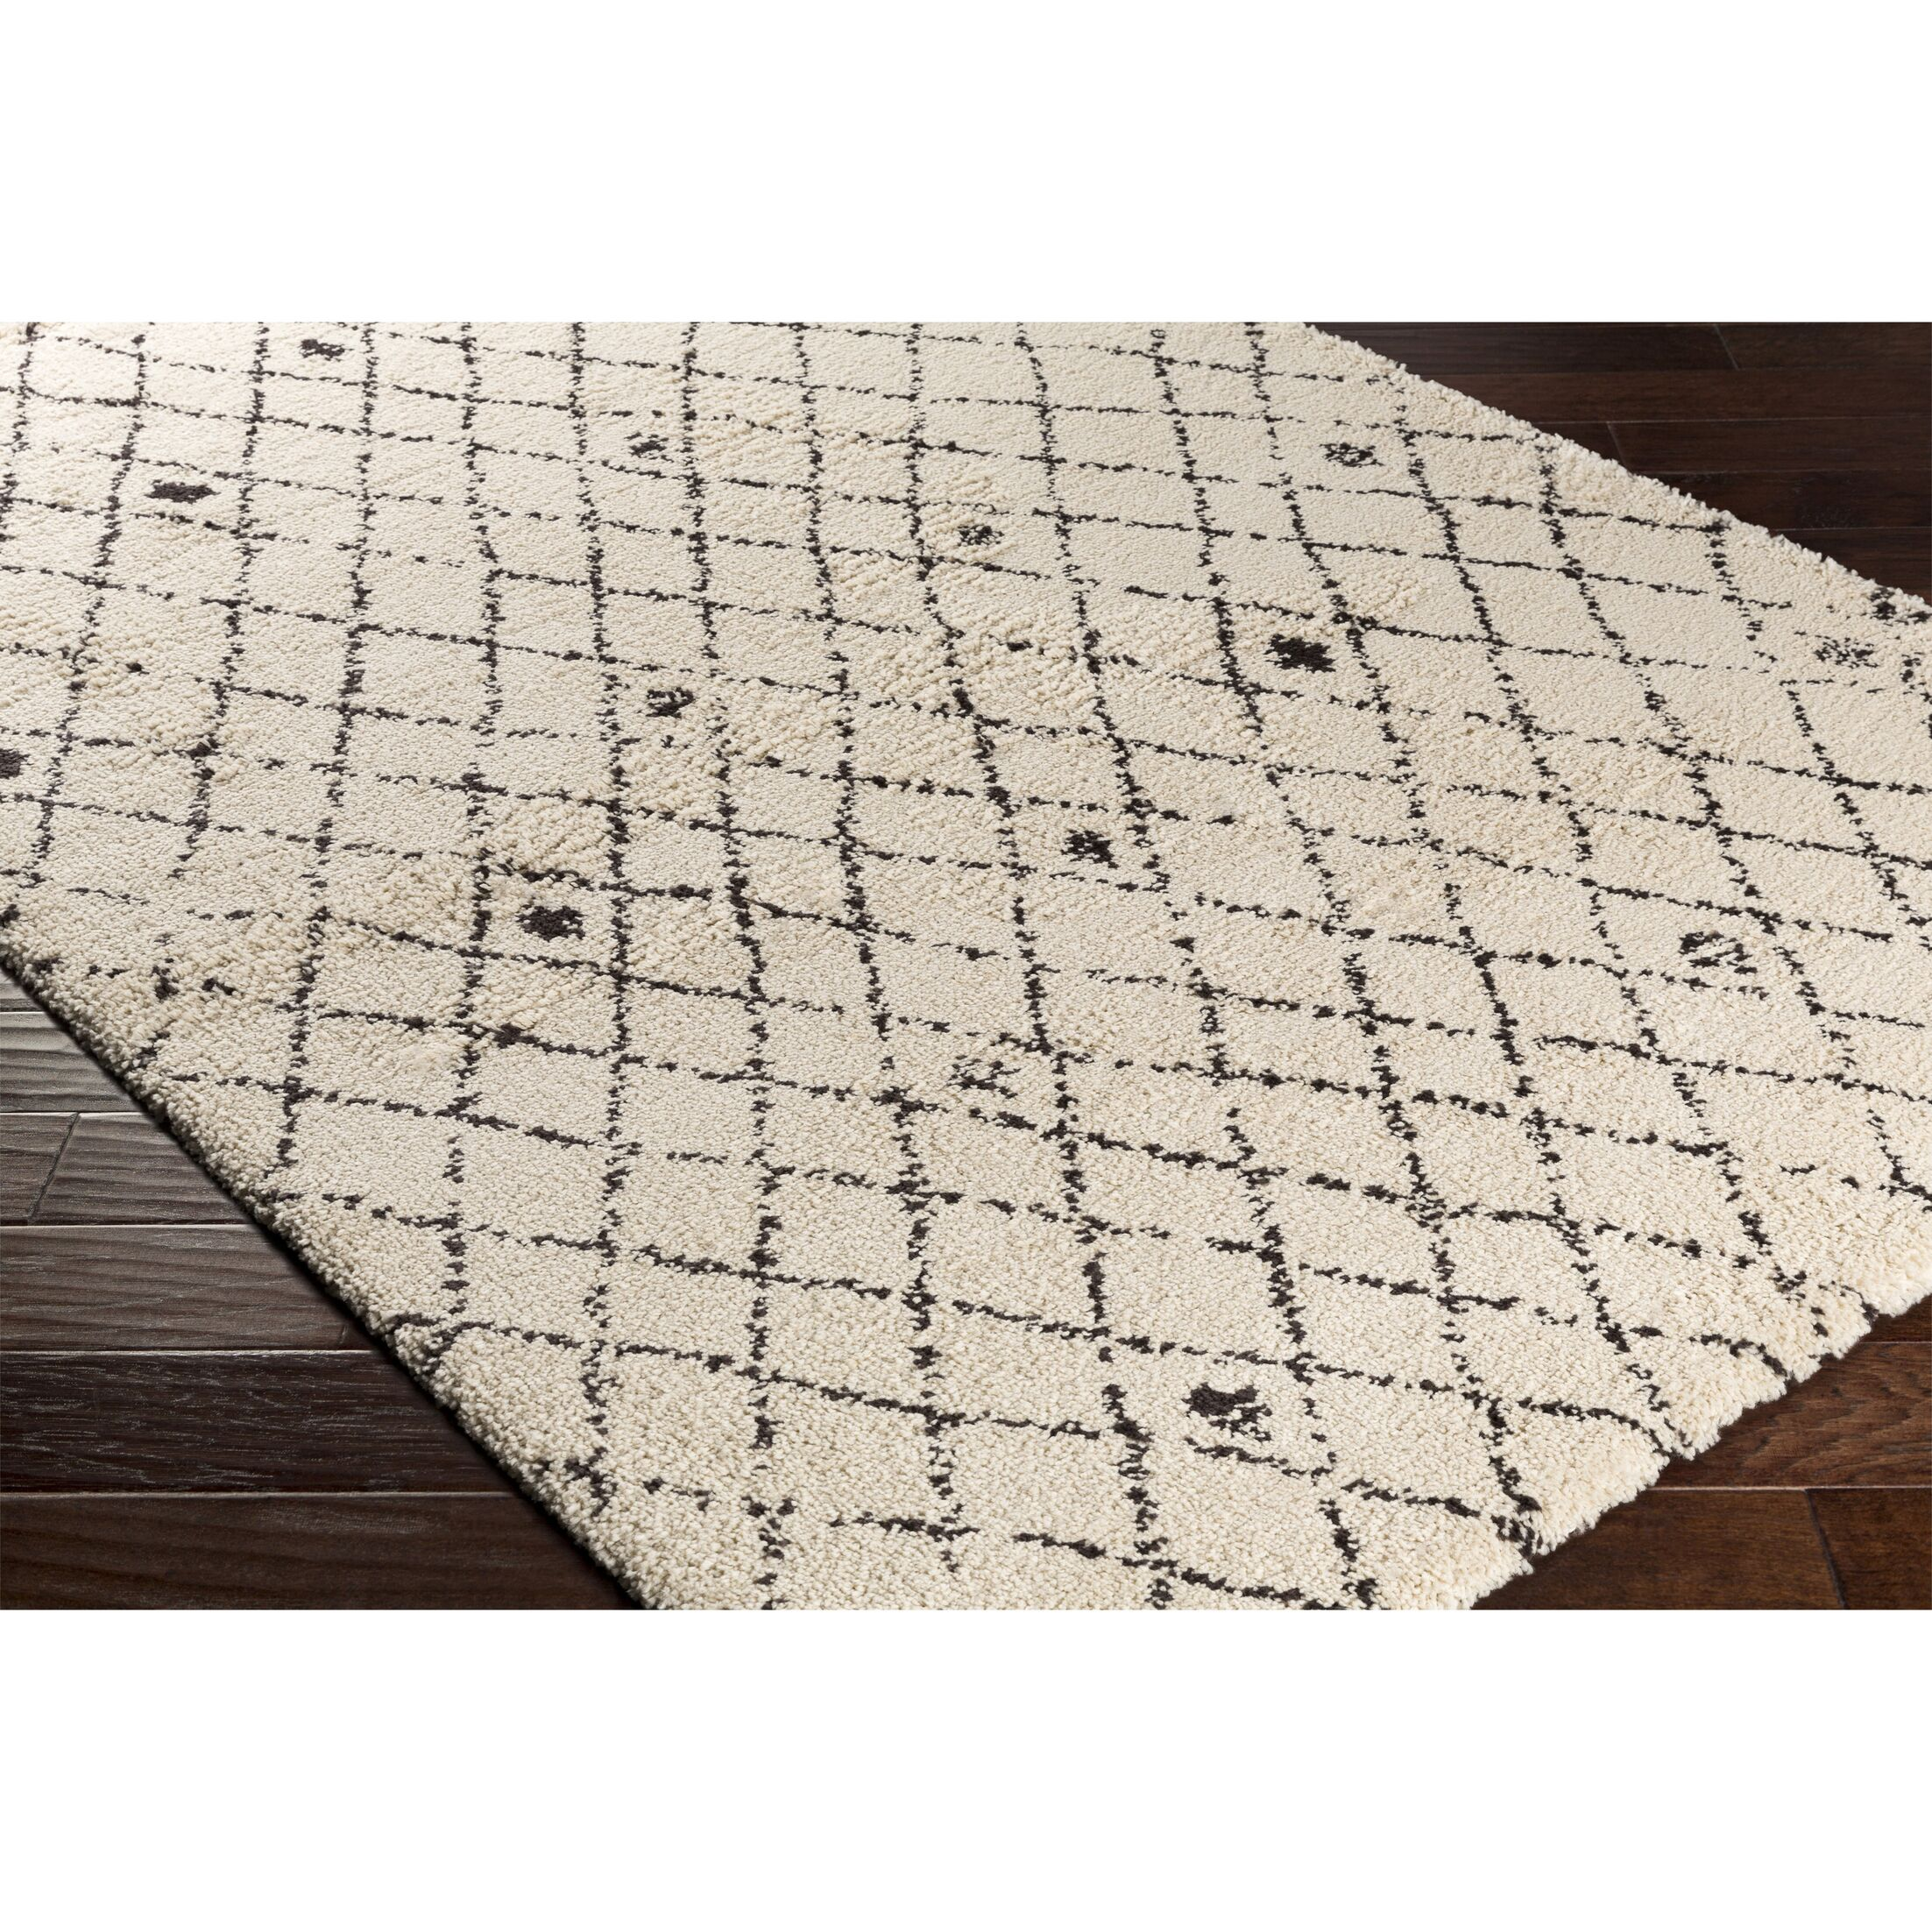 Kane Neutral/Brown Area Rug Rug Size: Rectangle 7'11